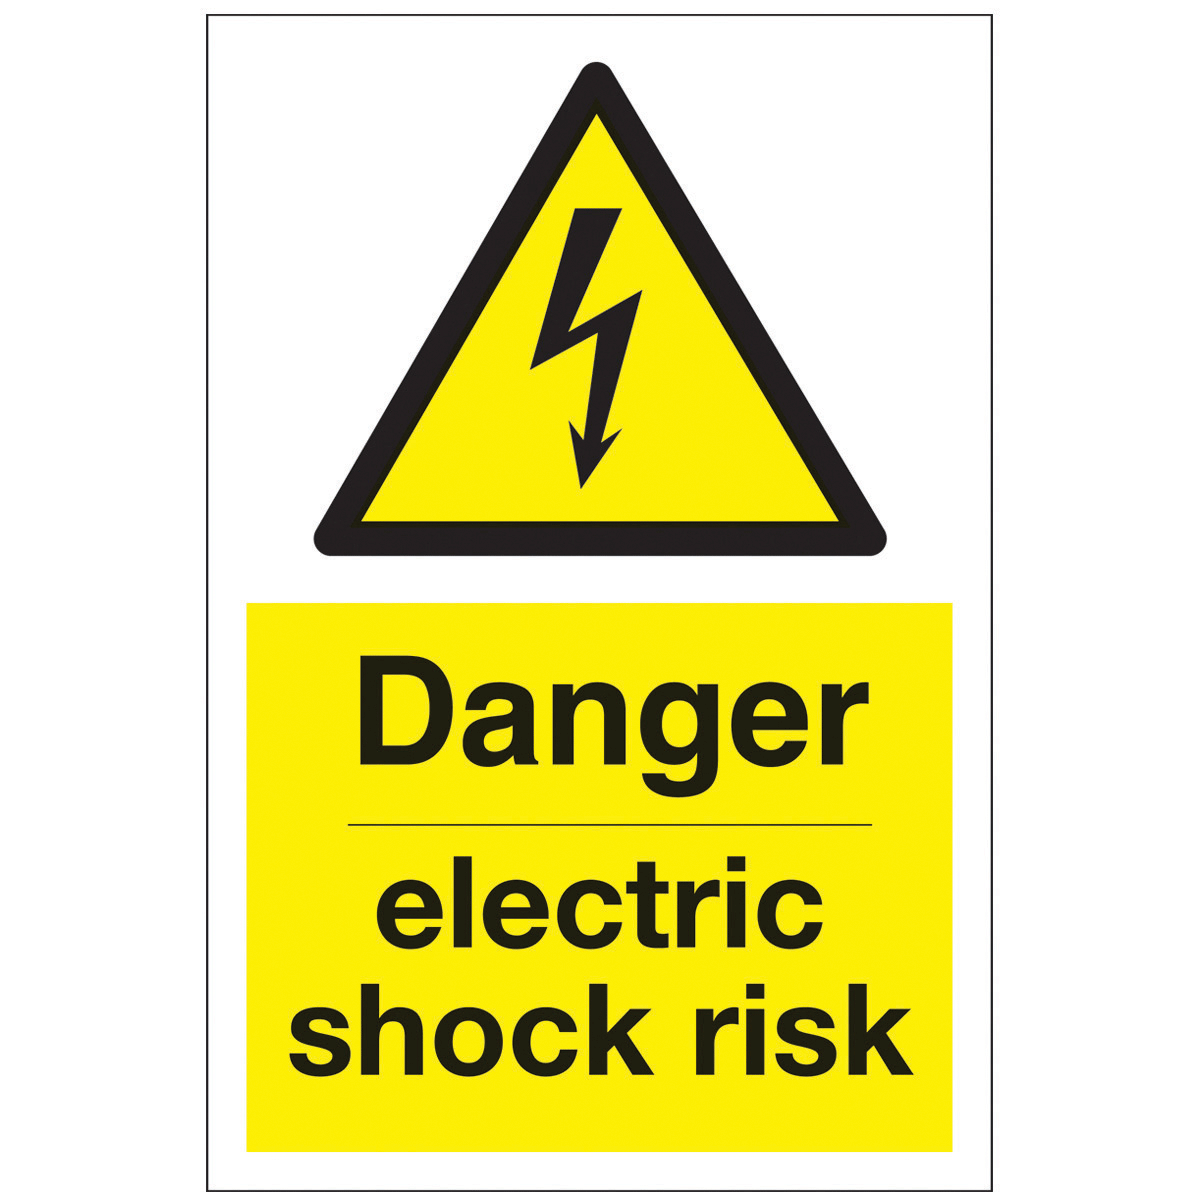 Danger Electric Shock Risk Safety Signs - Hazard & Warning ...